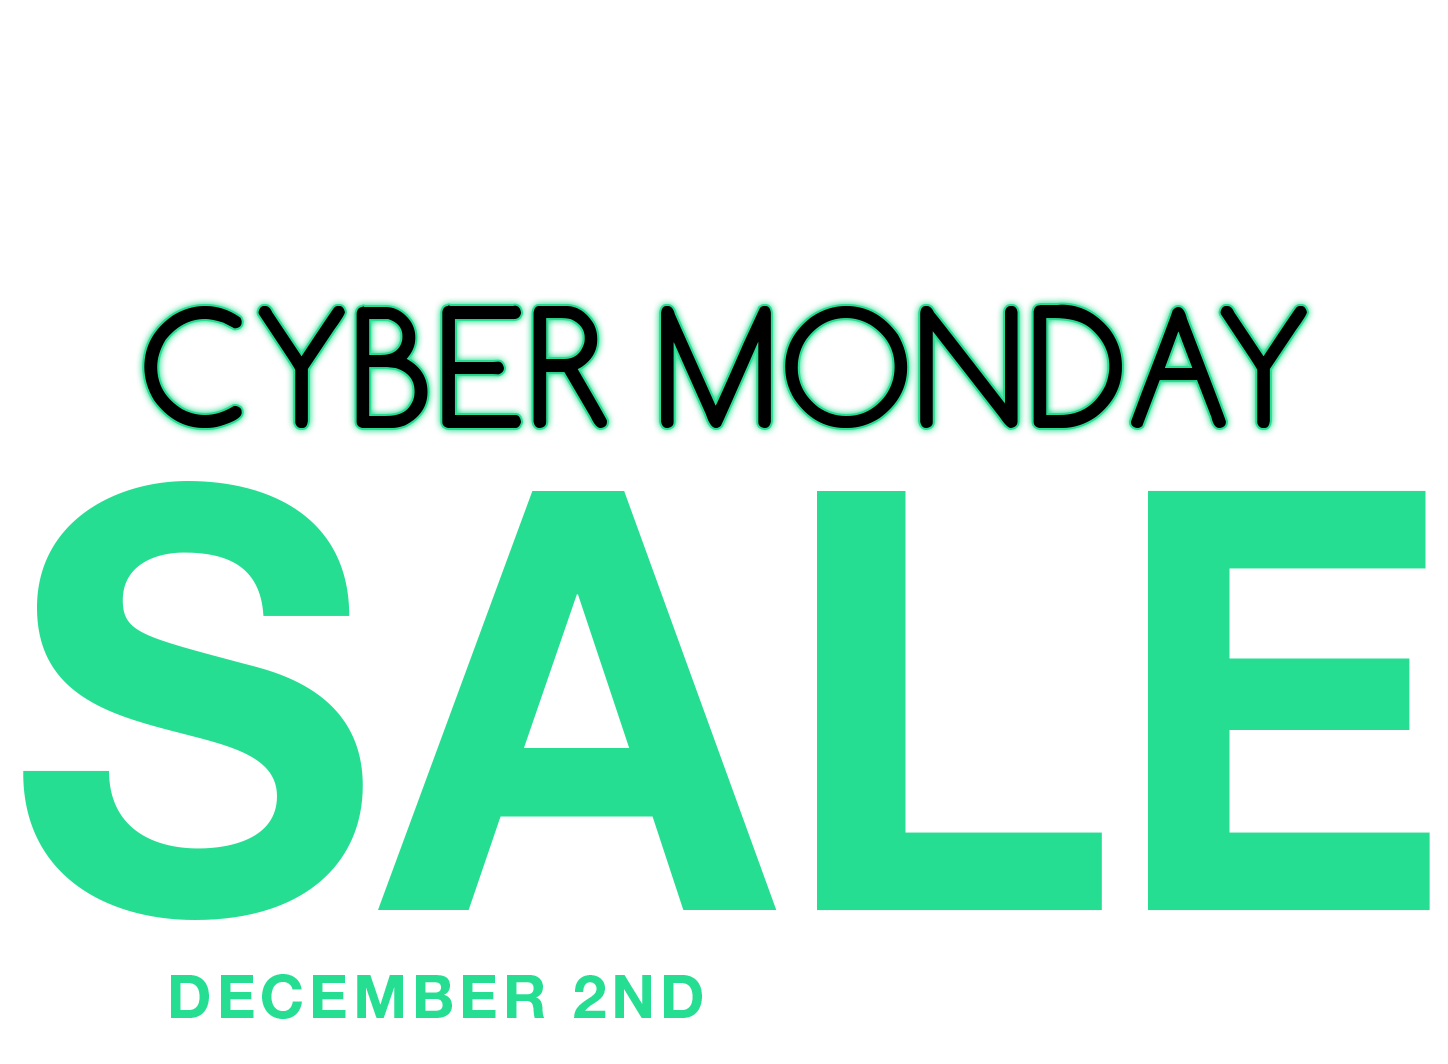 Stadium Toyota's Annual Cyber Monday Sale - Dec. 2nd | All Day Long!